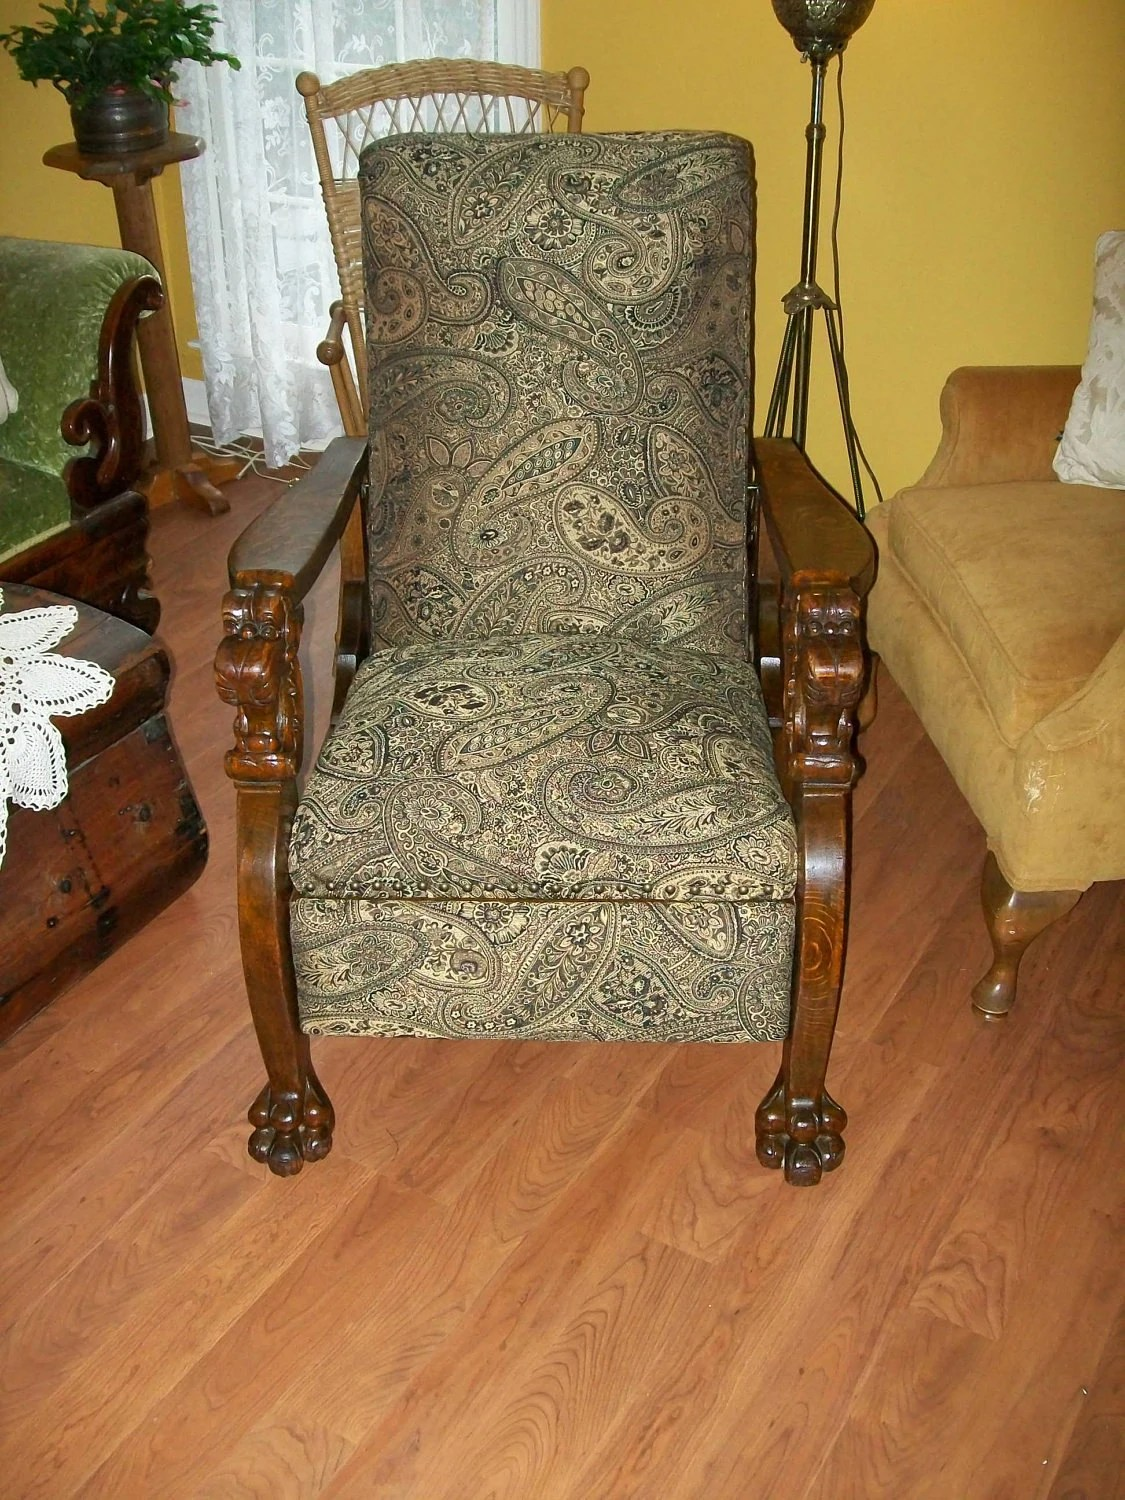 morris chairs for sale wooden hammock chair stand streit oak carved lion's heads feet